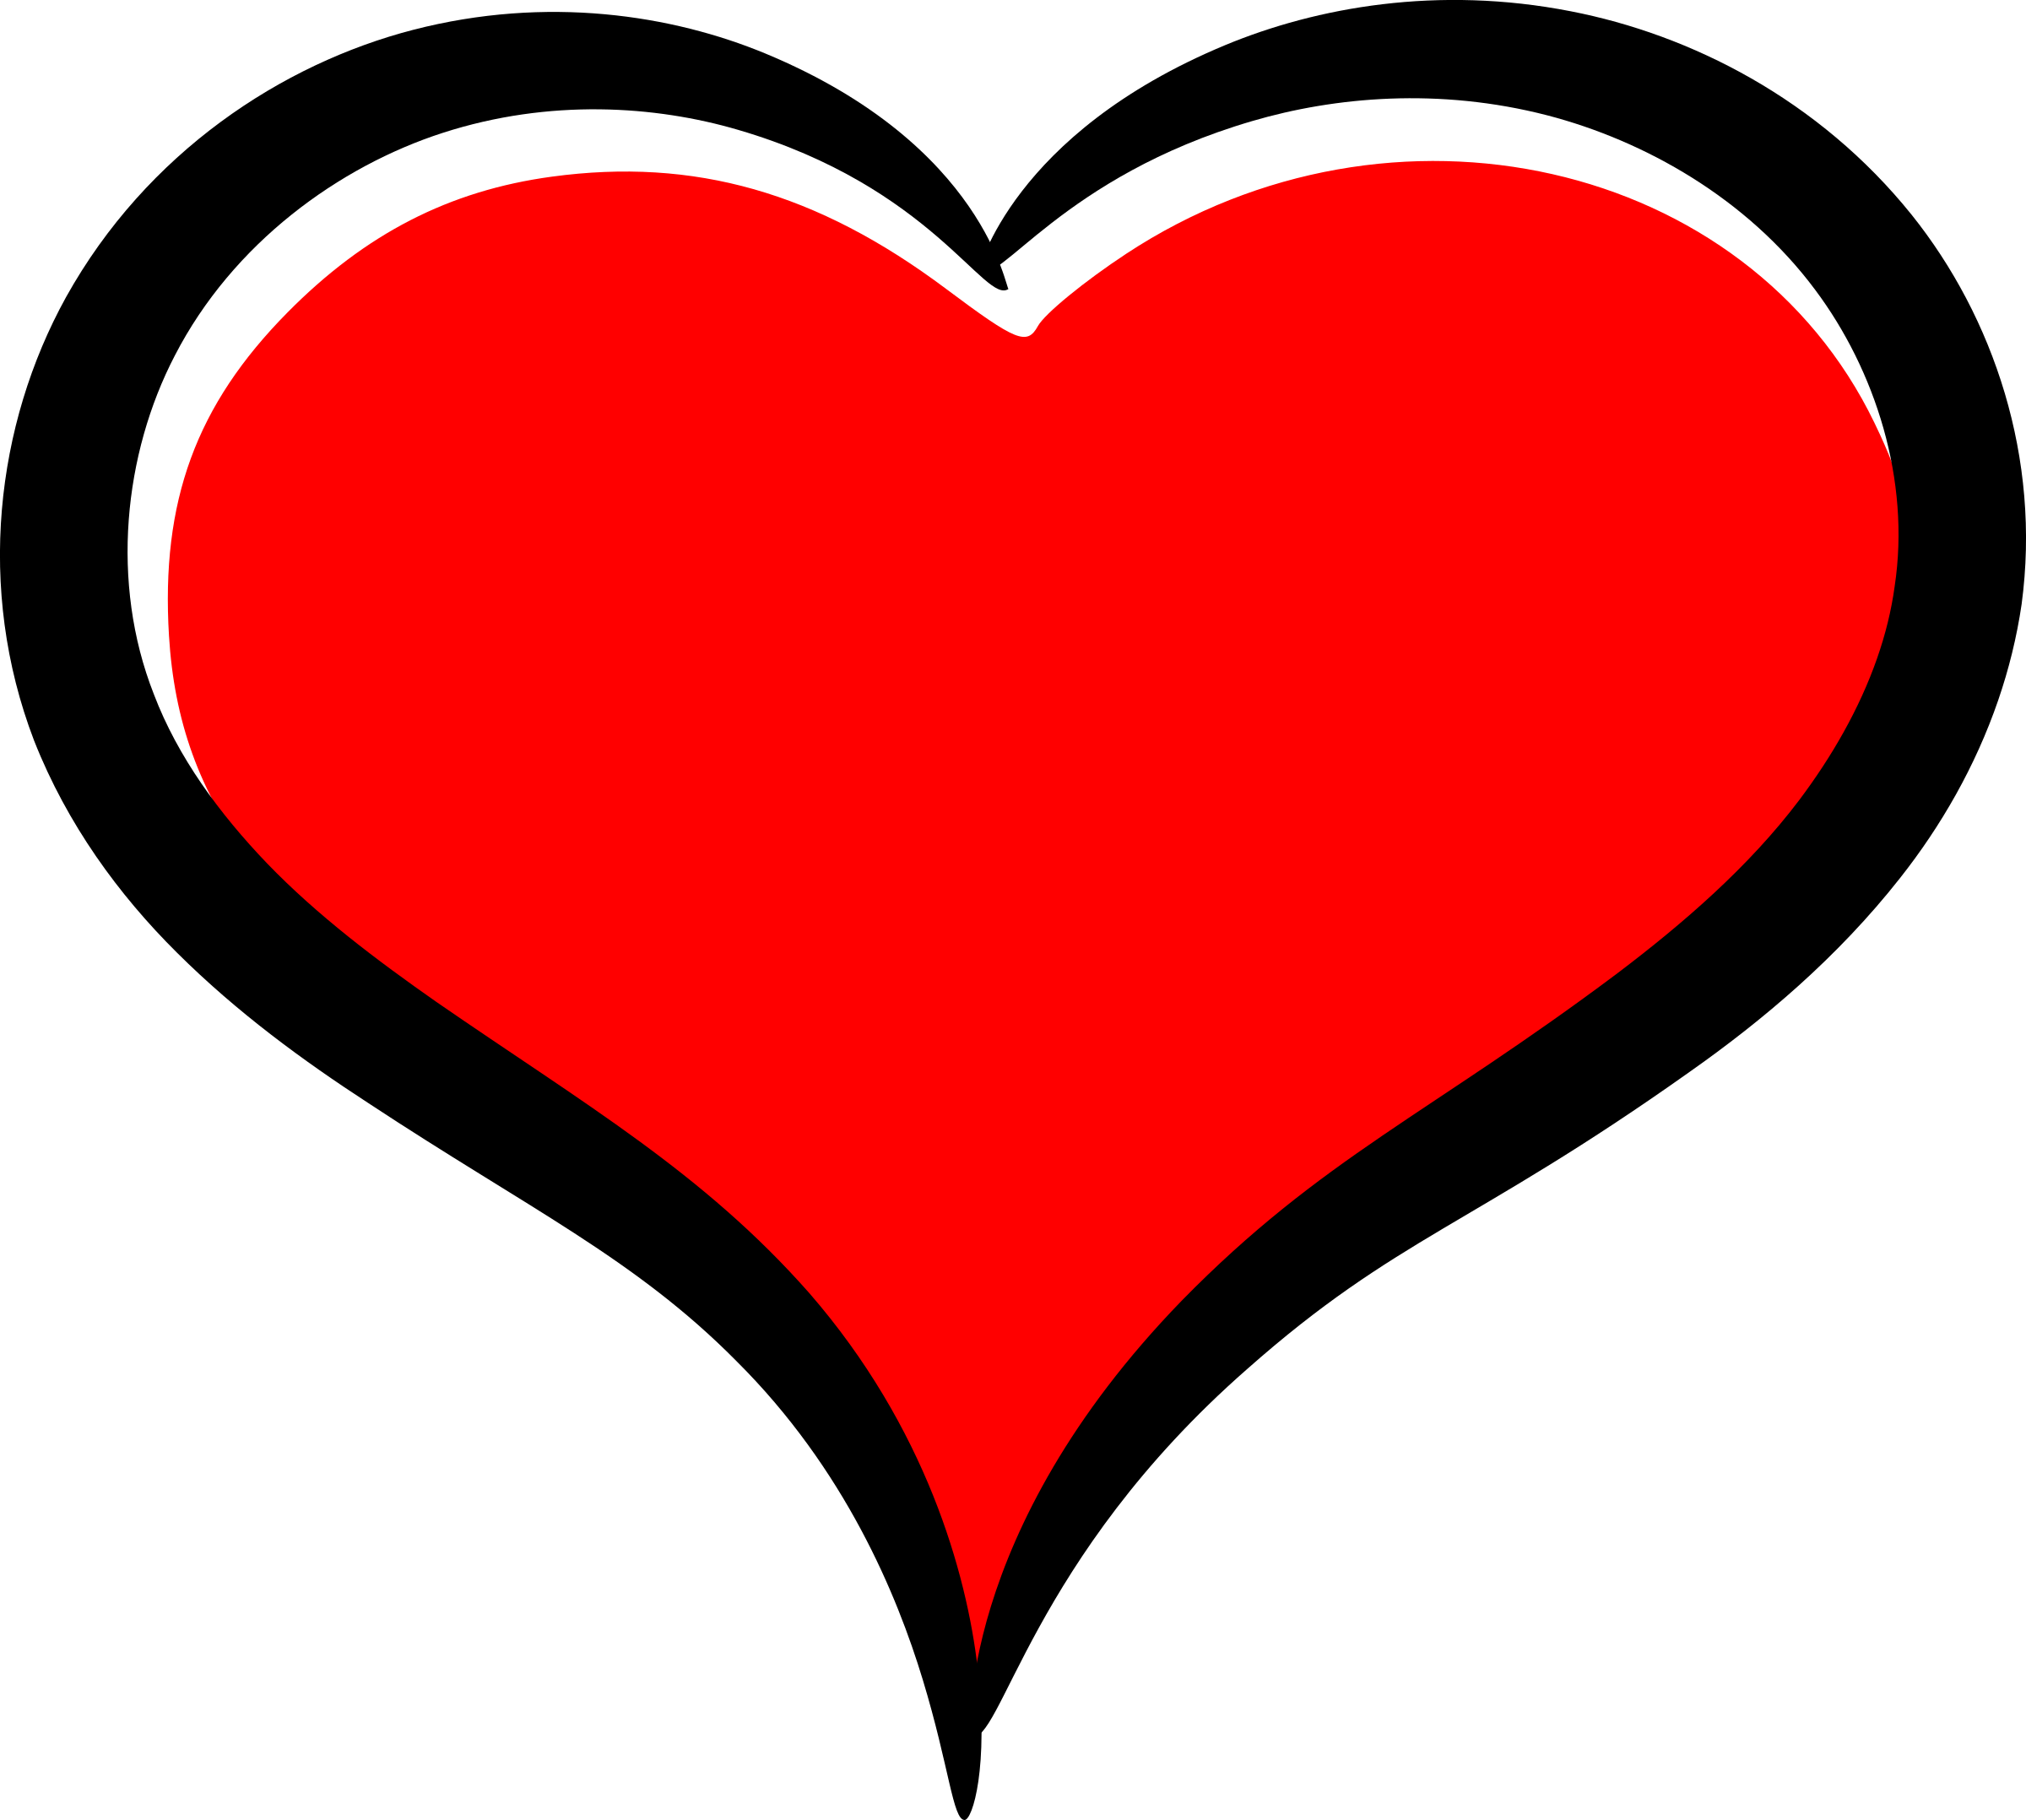 Hearts clipart love symbol Heart heart Red Red Clipart